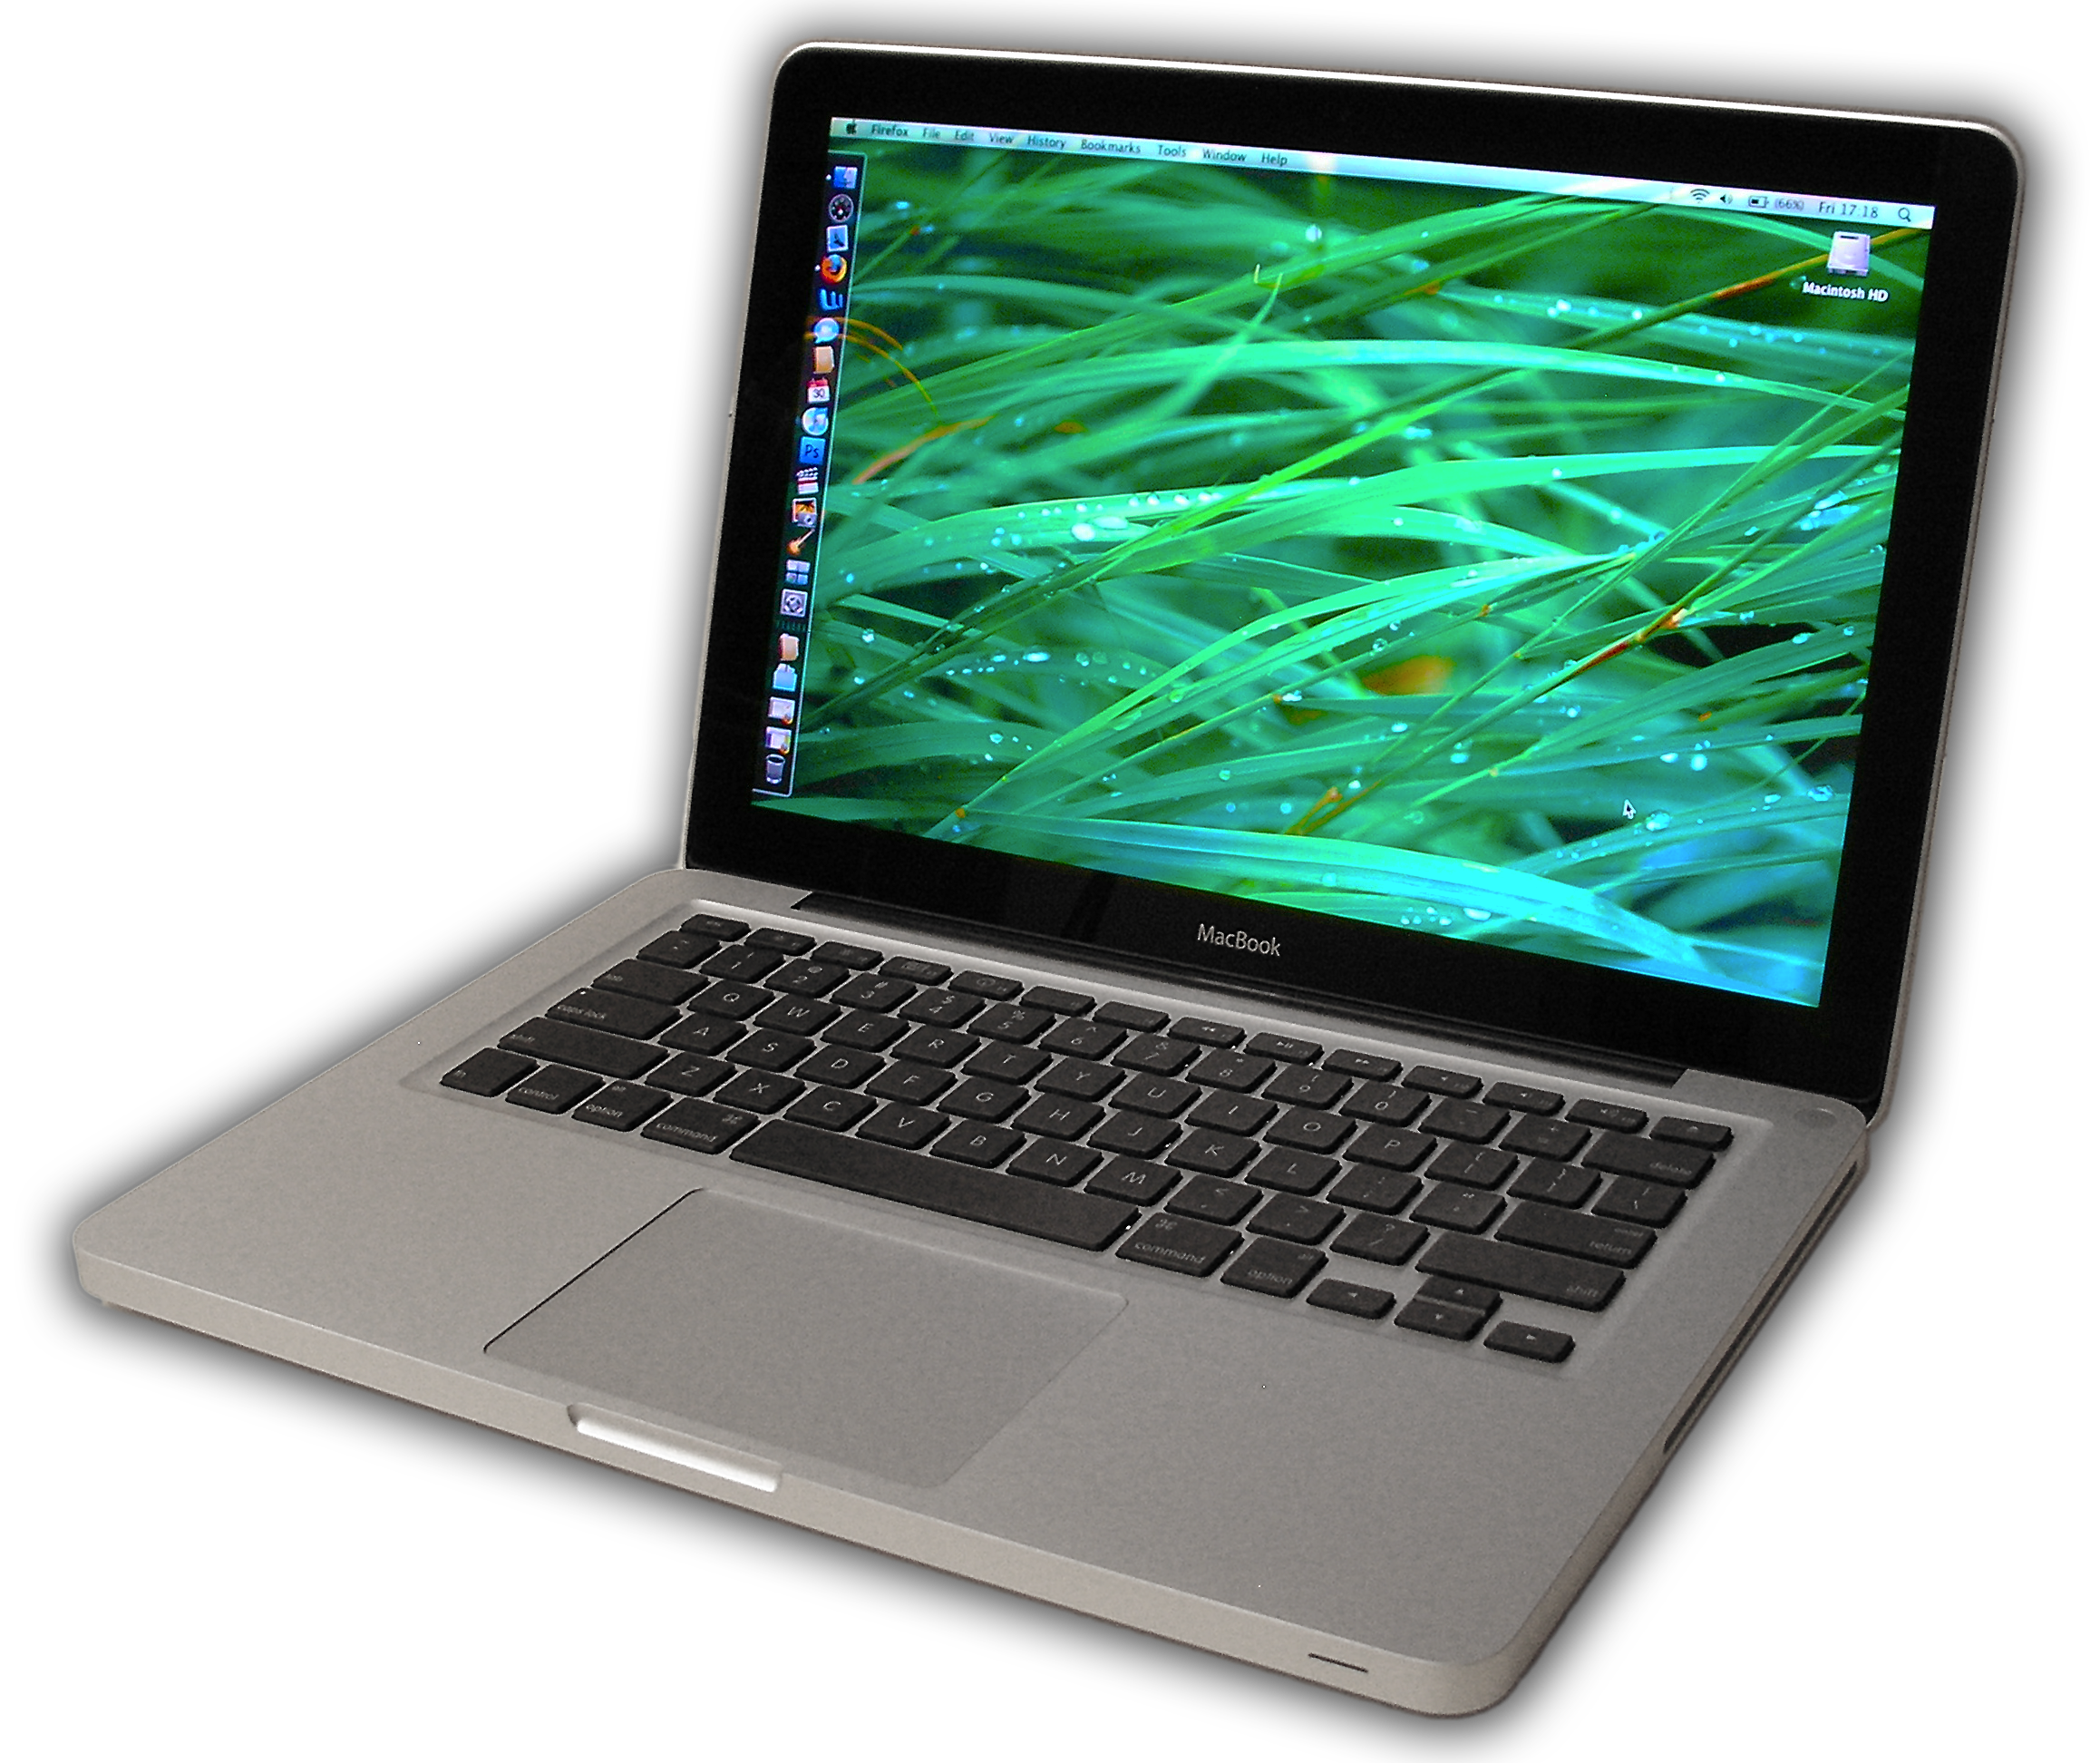 Macbook Air Png Transparent Background | www.imgkid.com ...